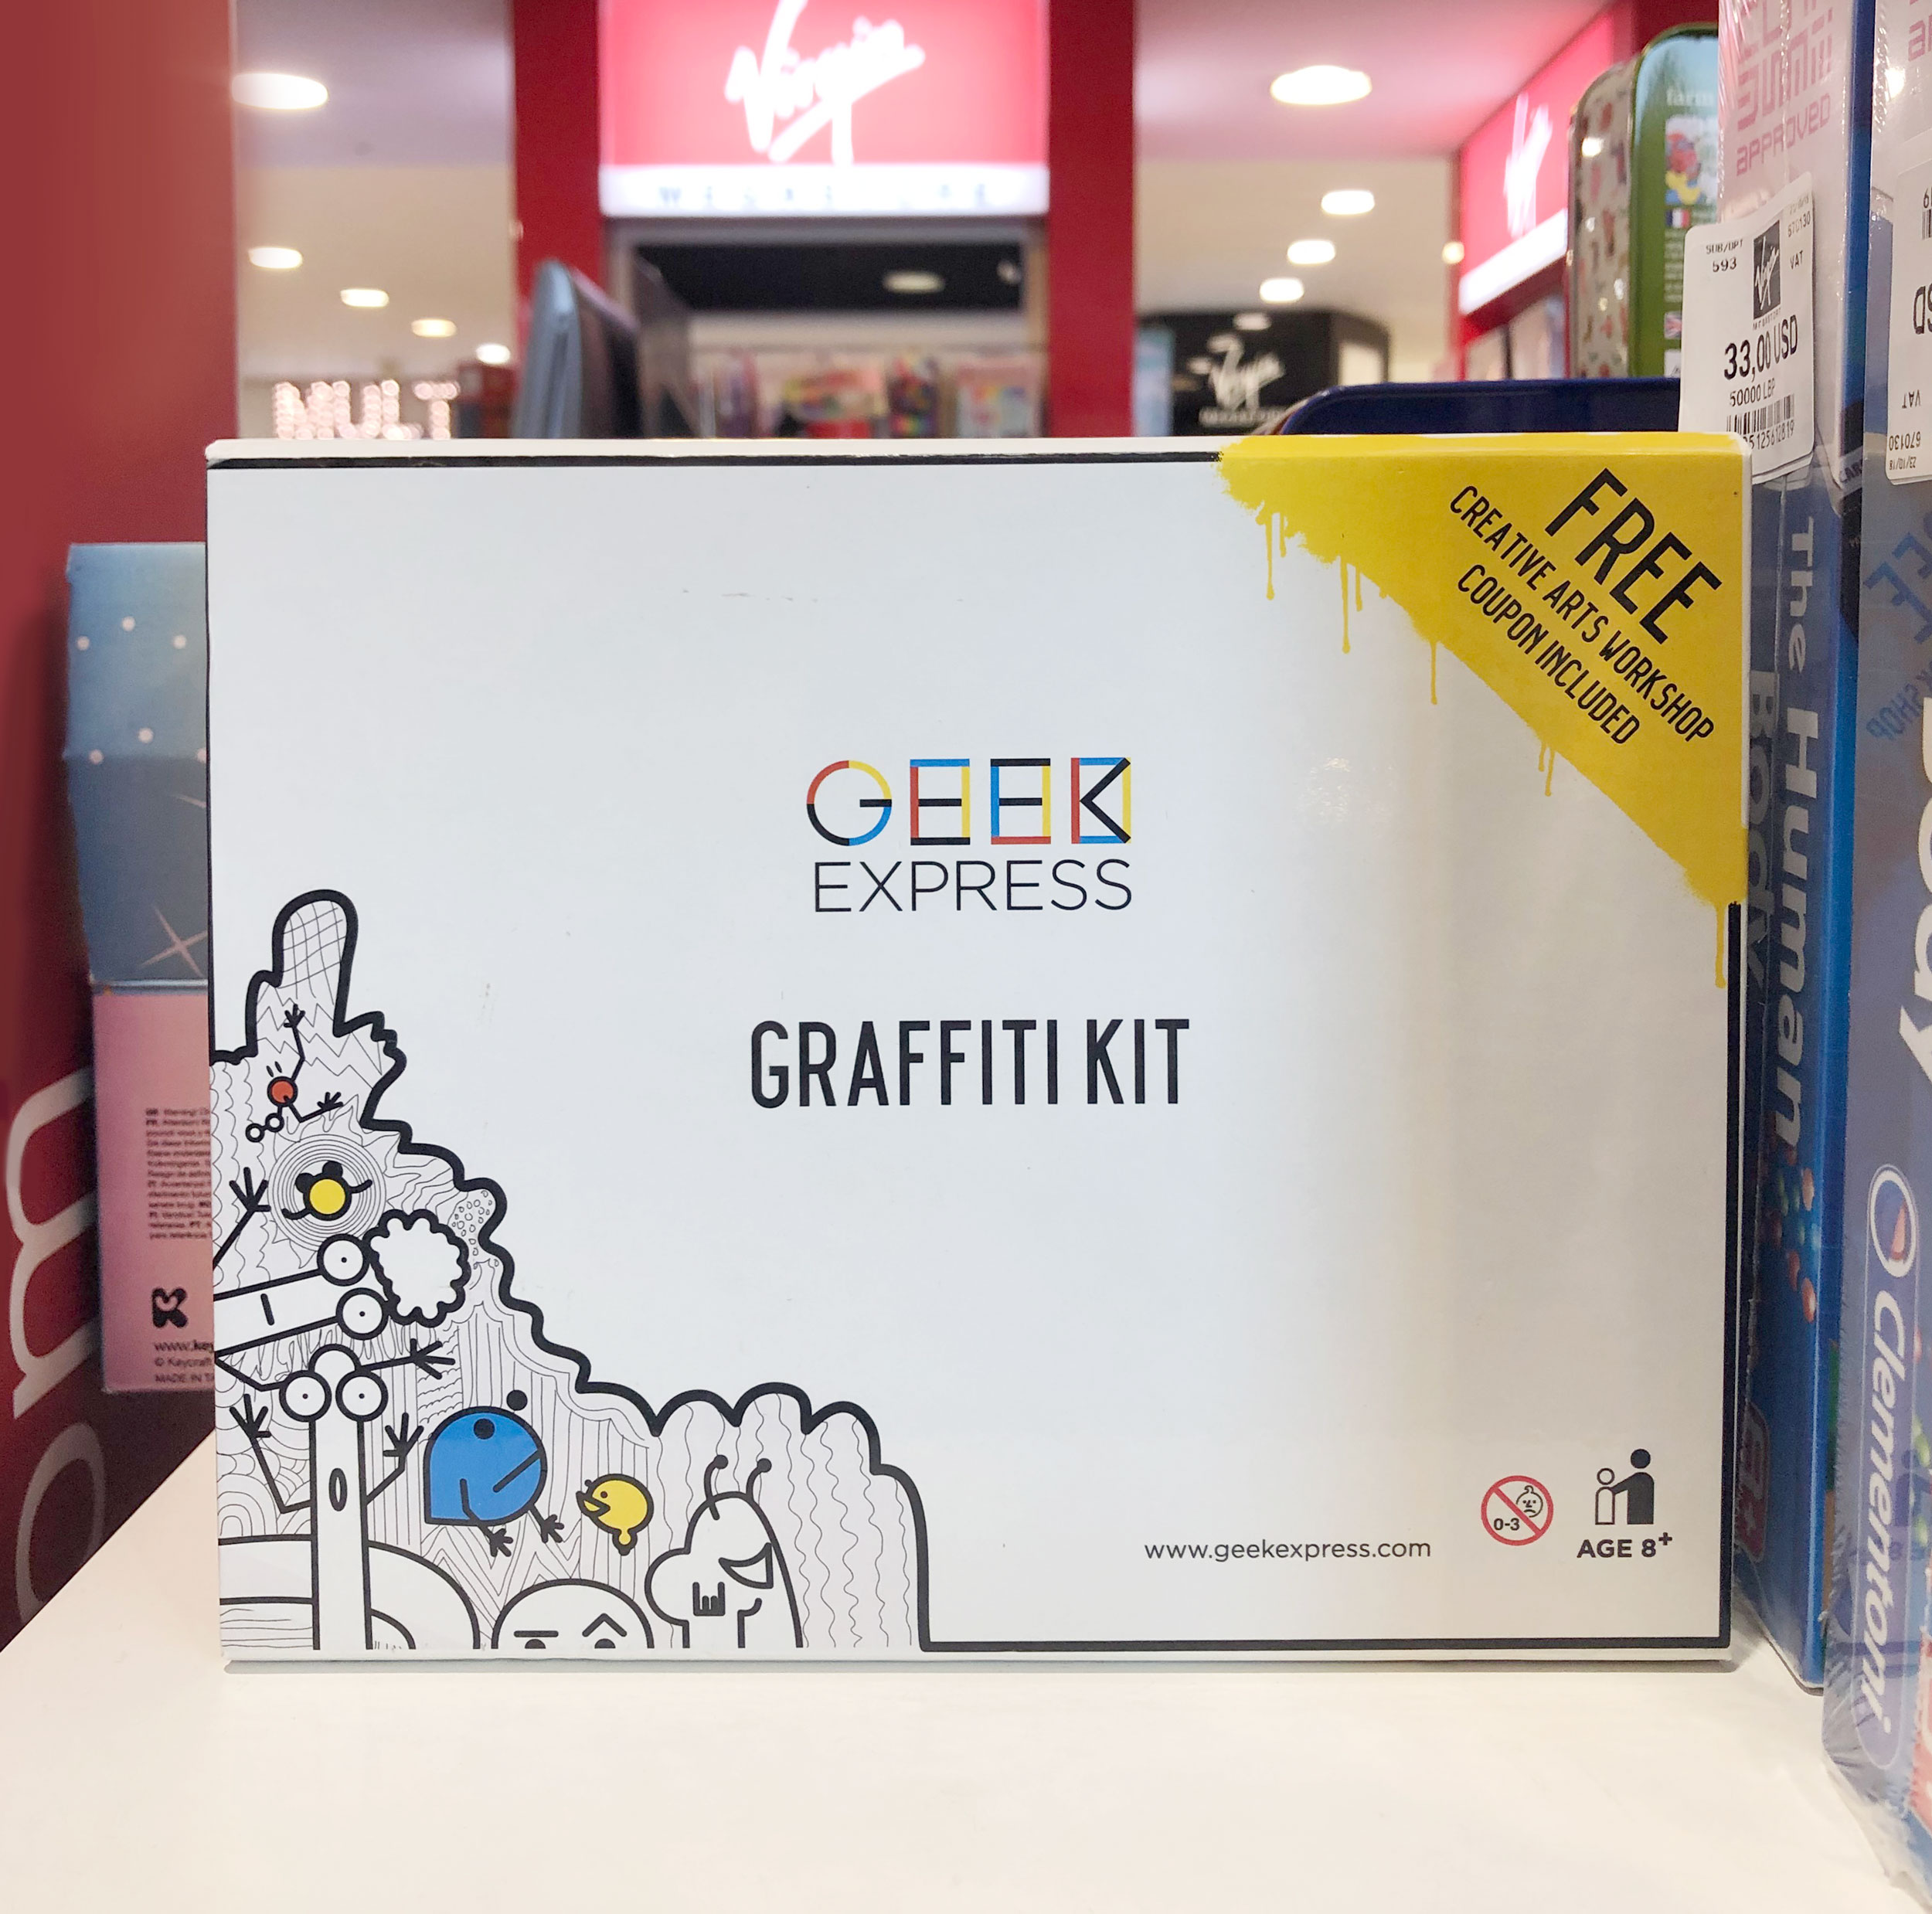 Geek Express Graffiti Kit